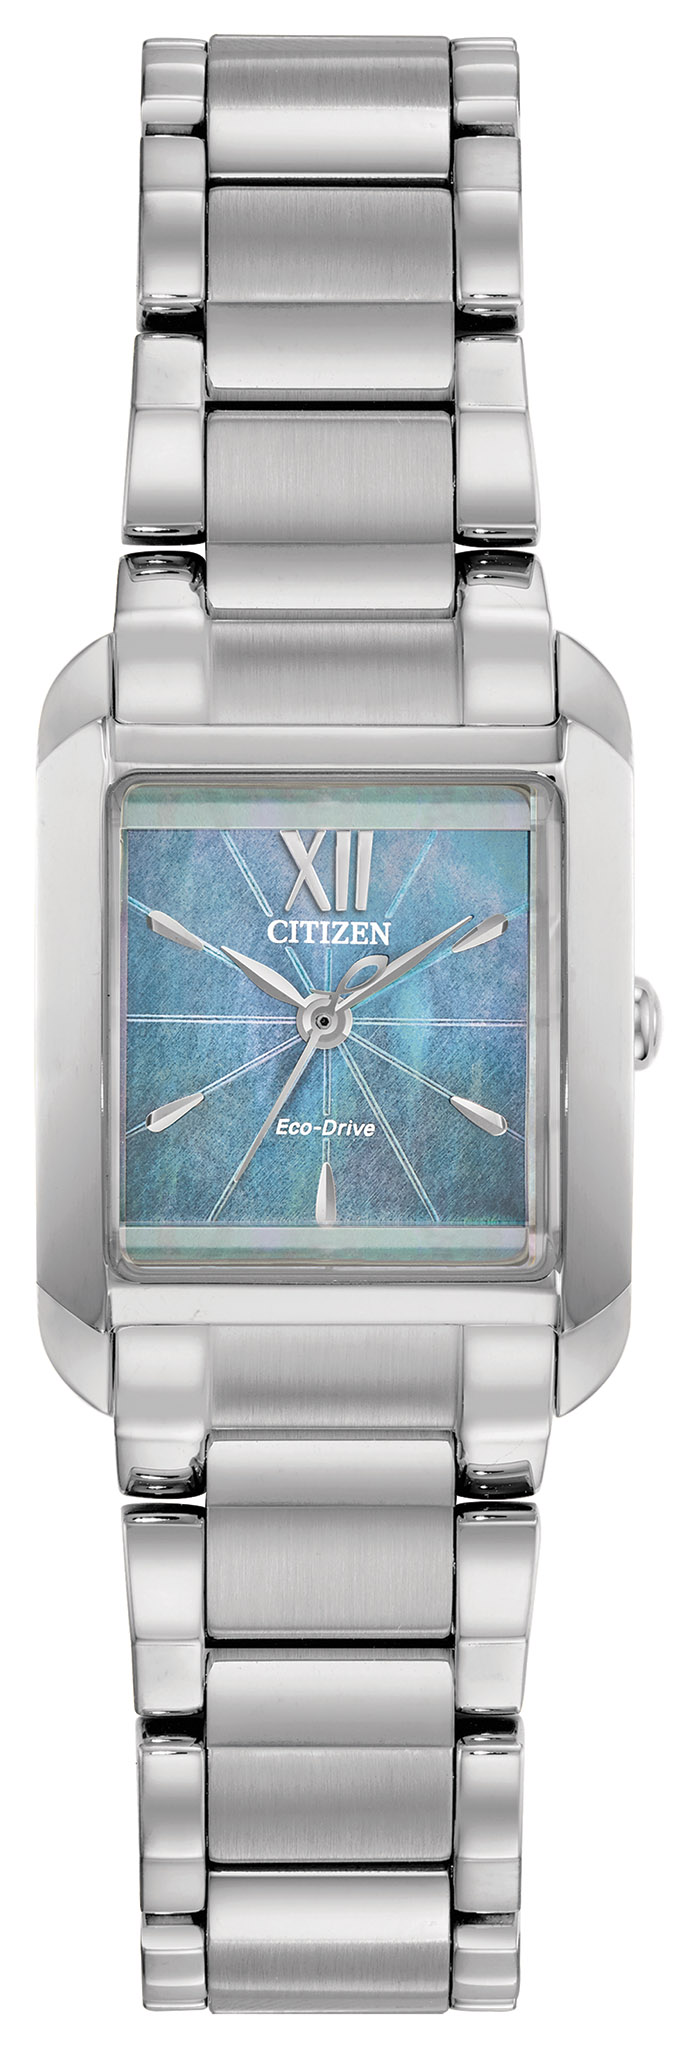 Citizen Bianca Tank Style Watch EW5551-56N